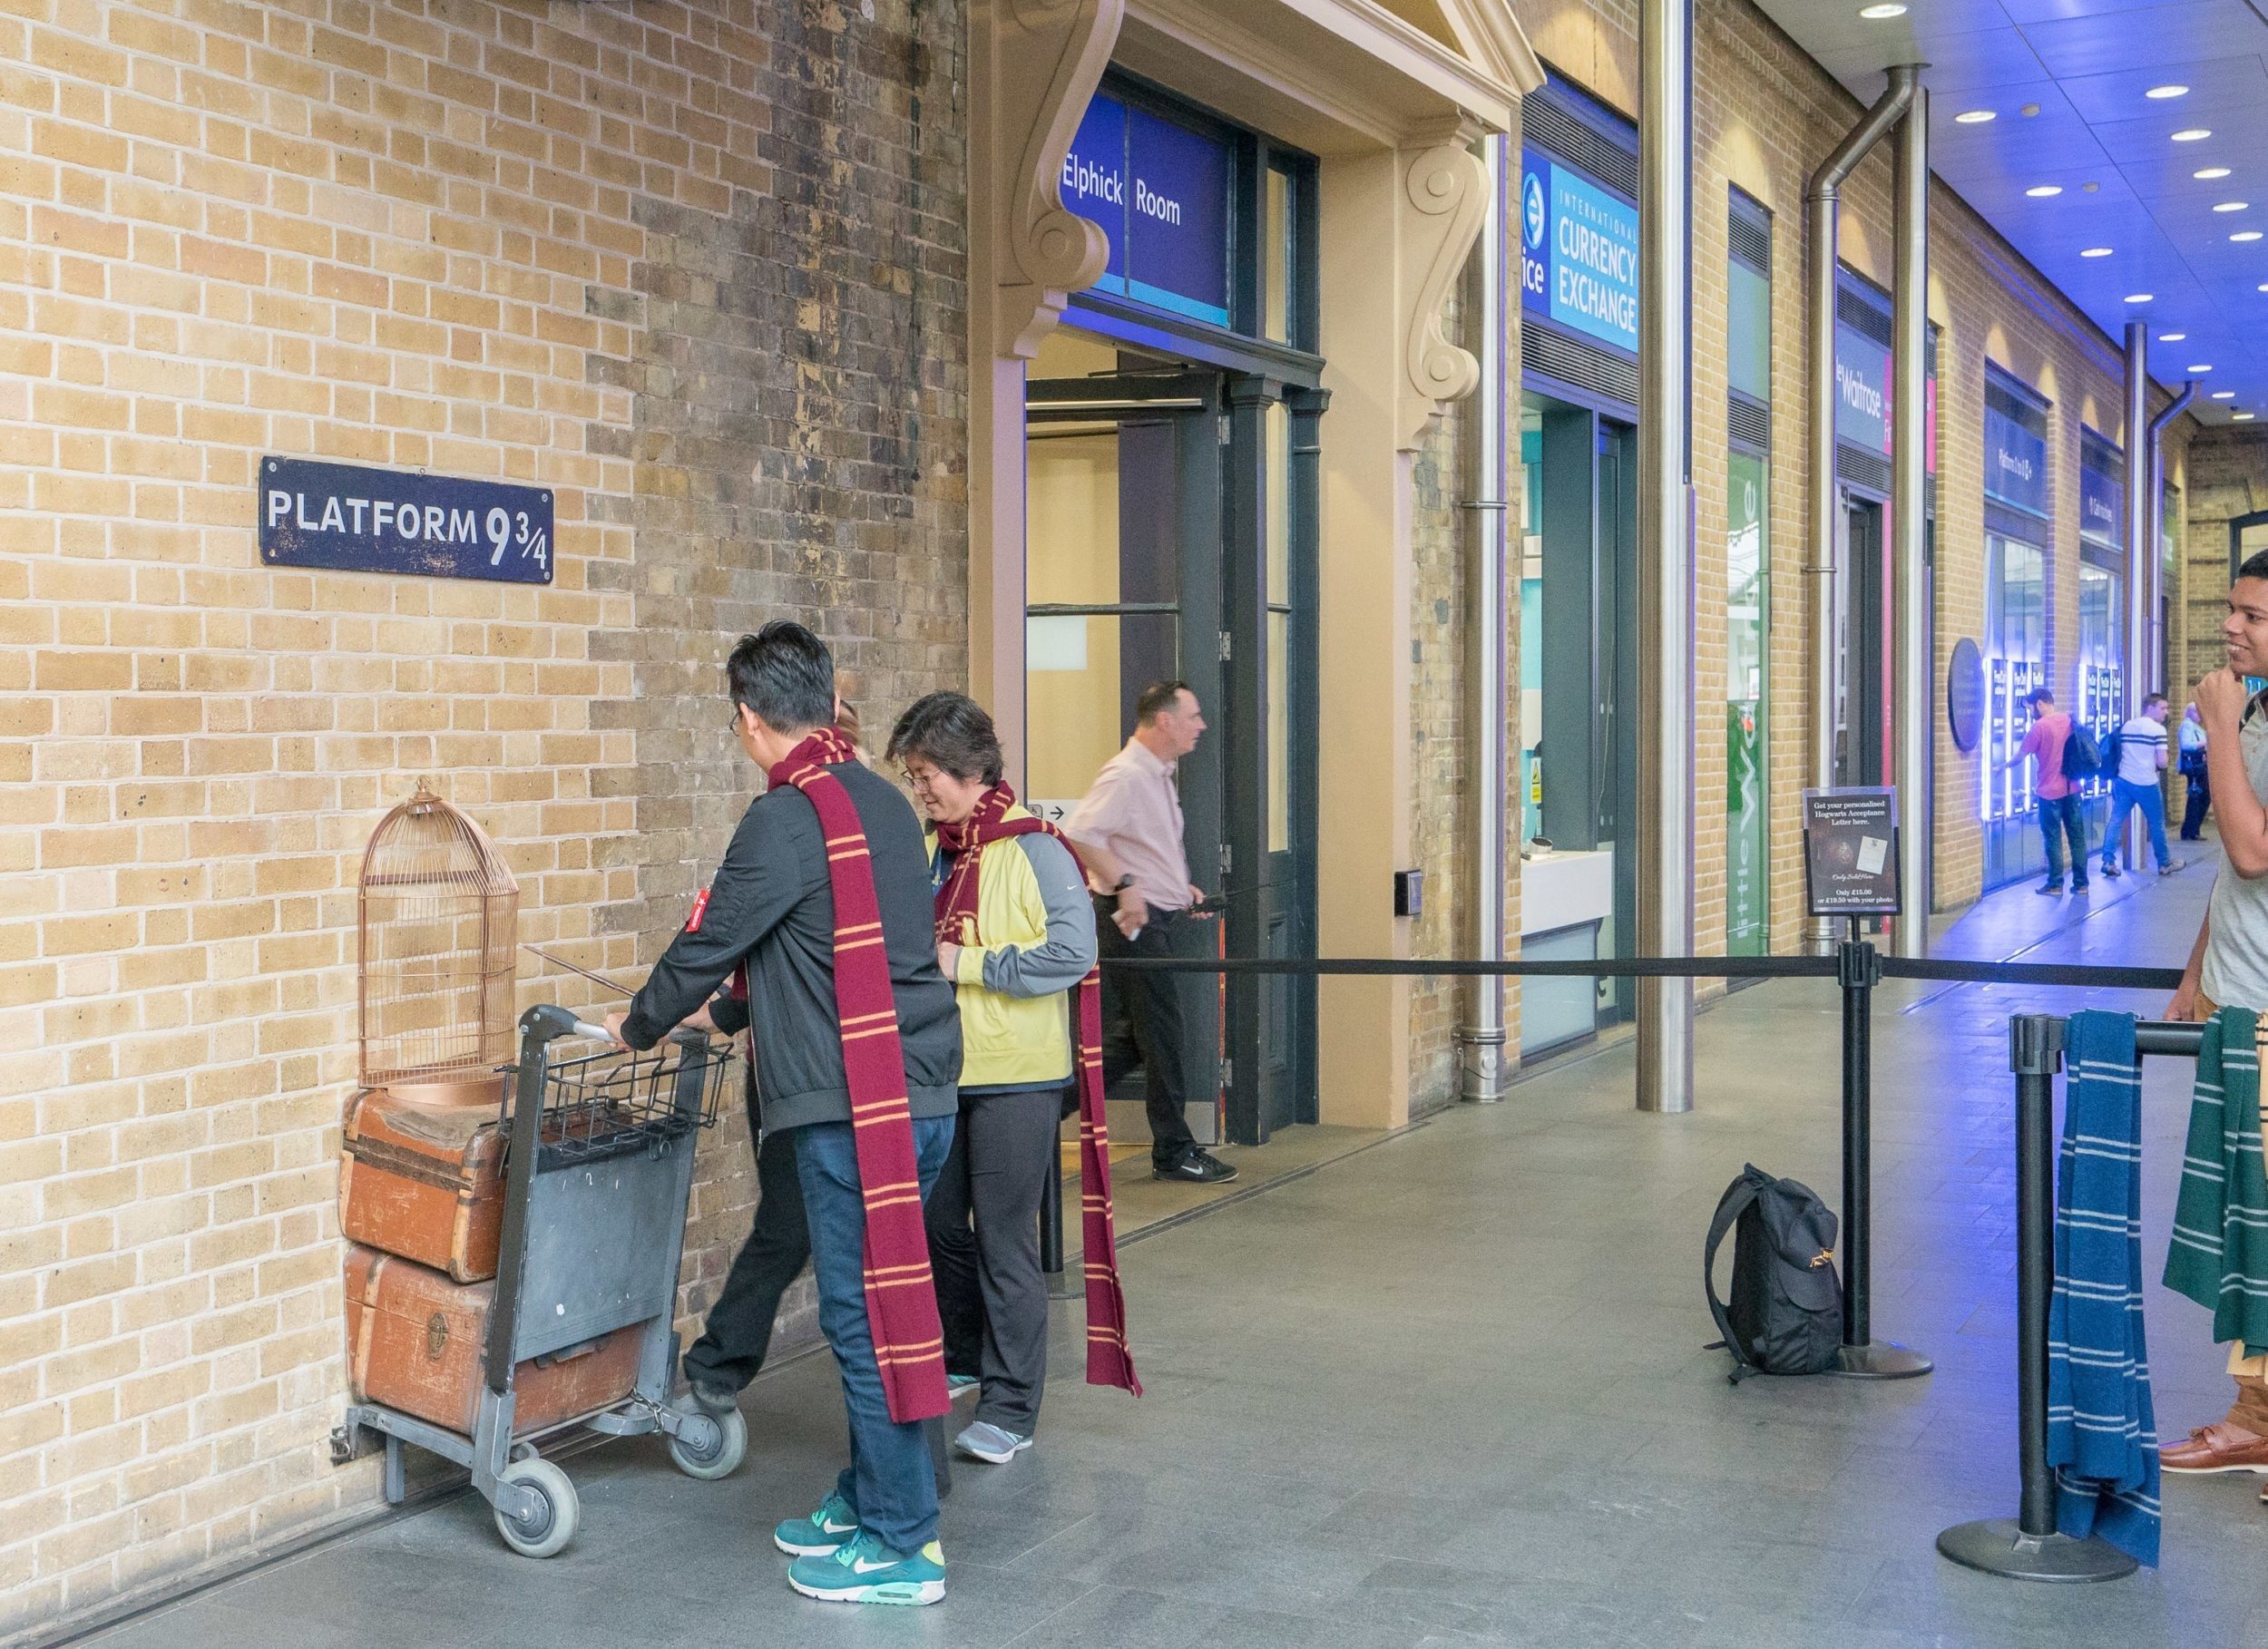 The Ultimate Guide to Planning a Harry Potter London Vacation - La